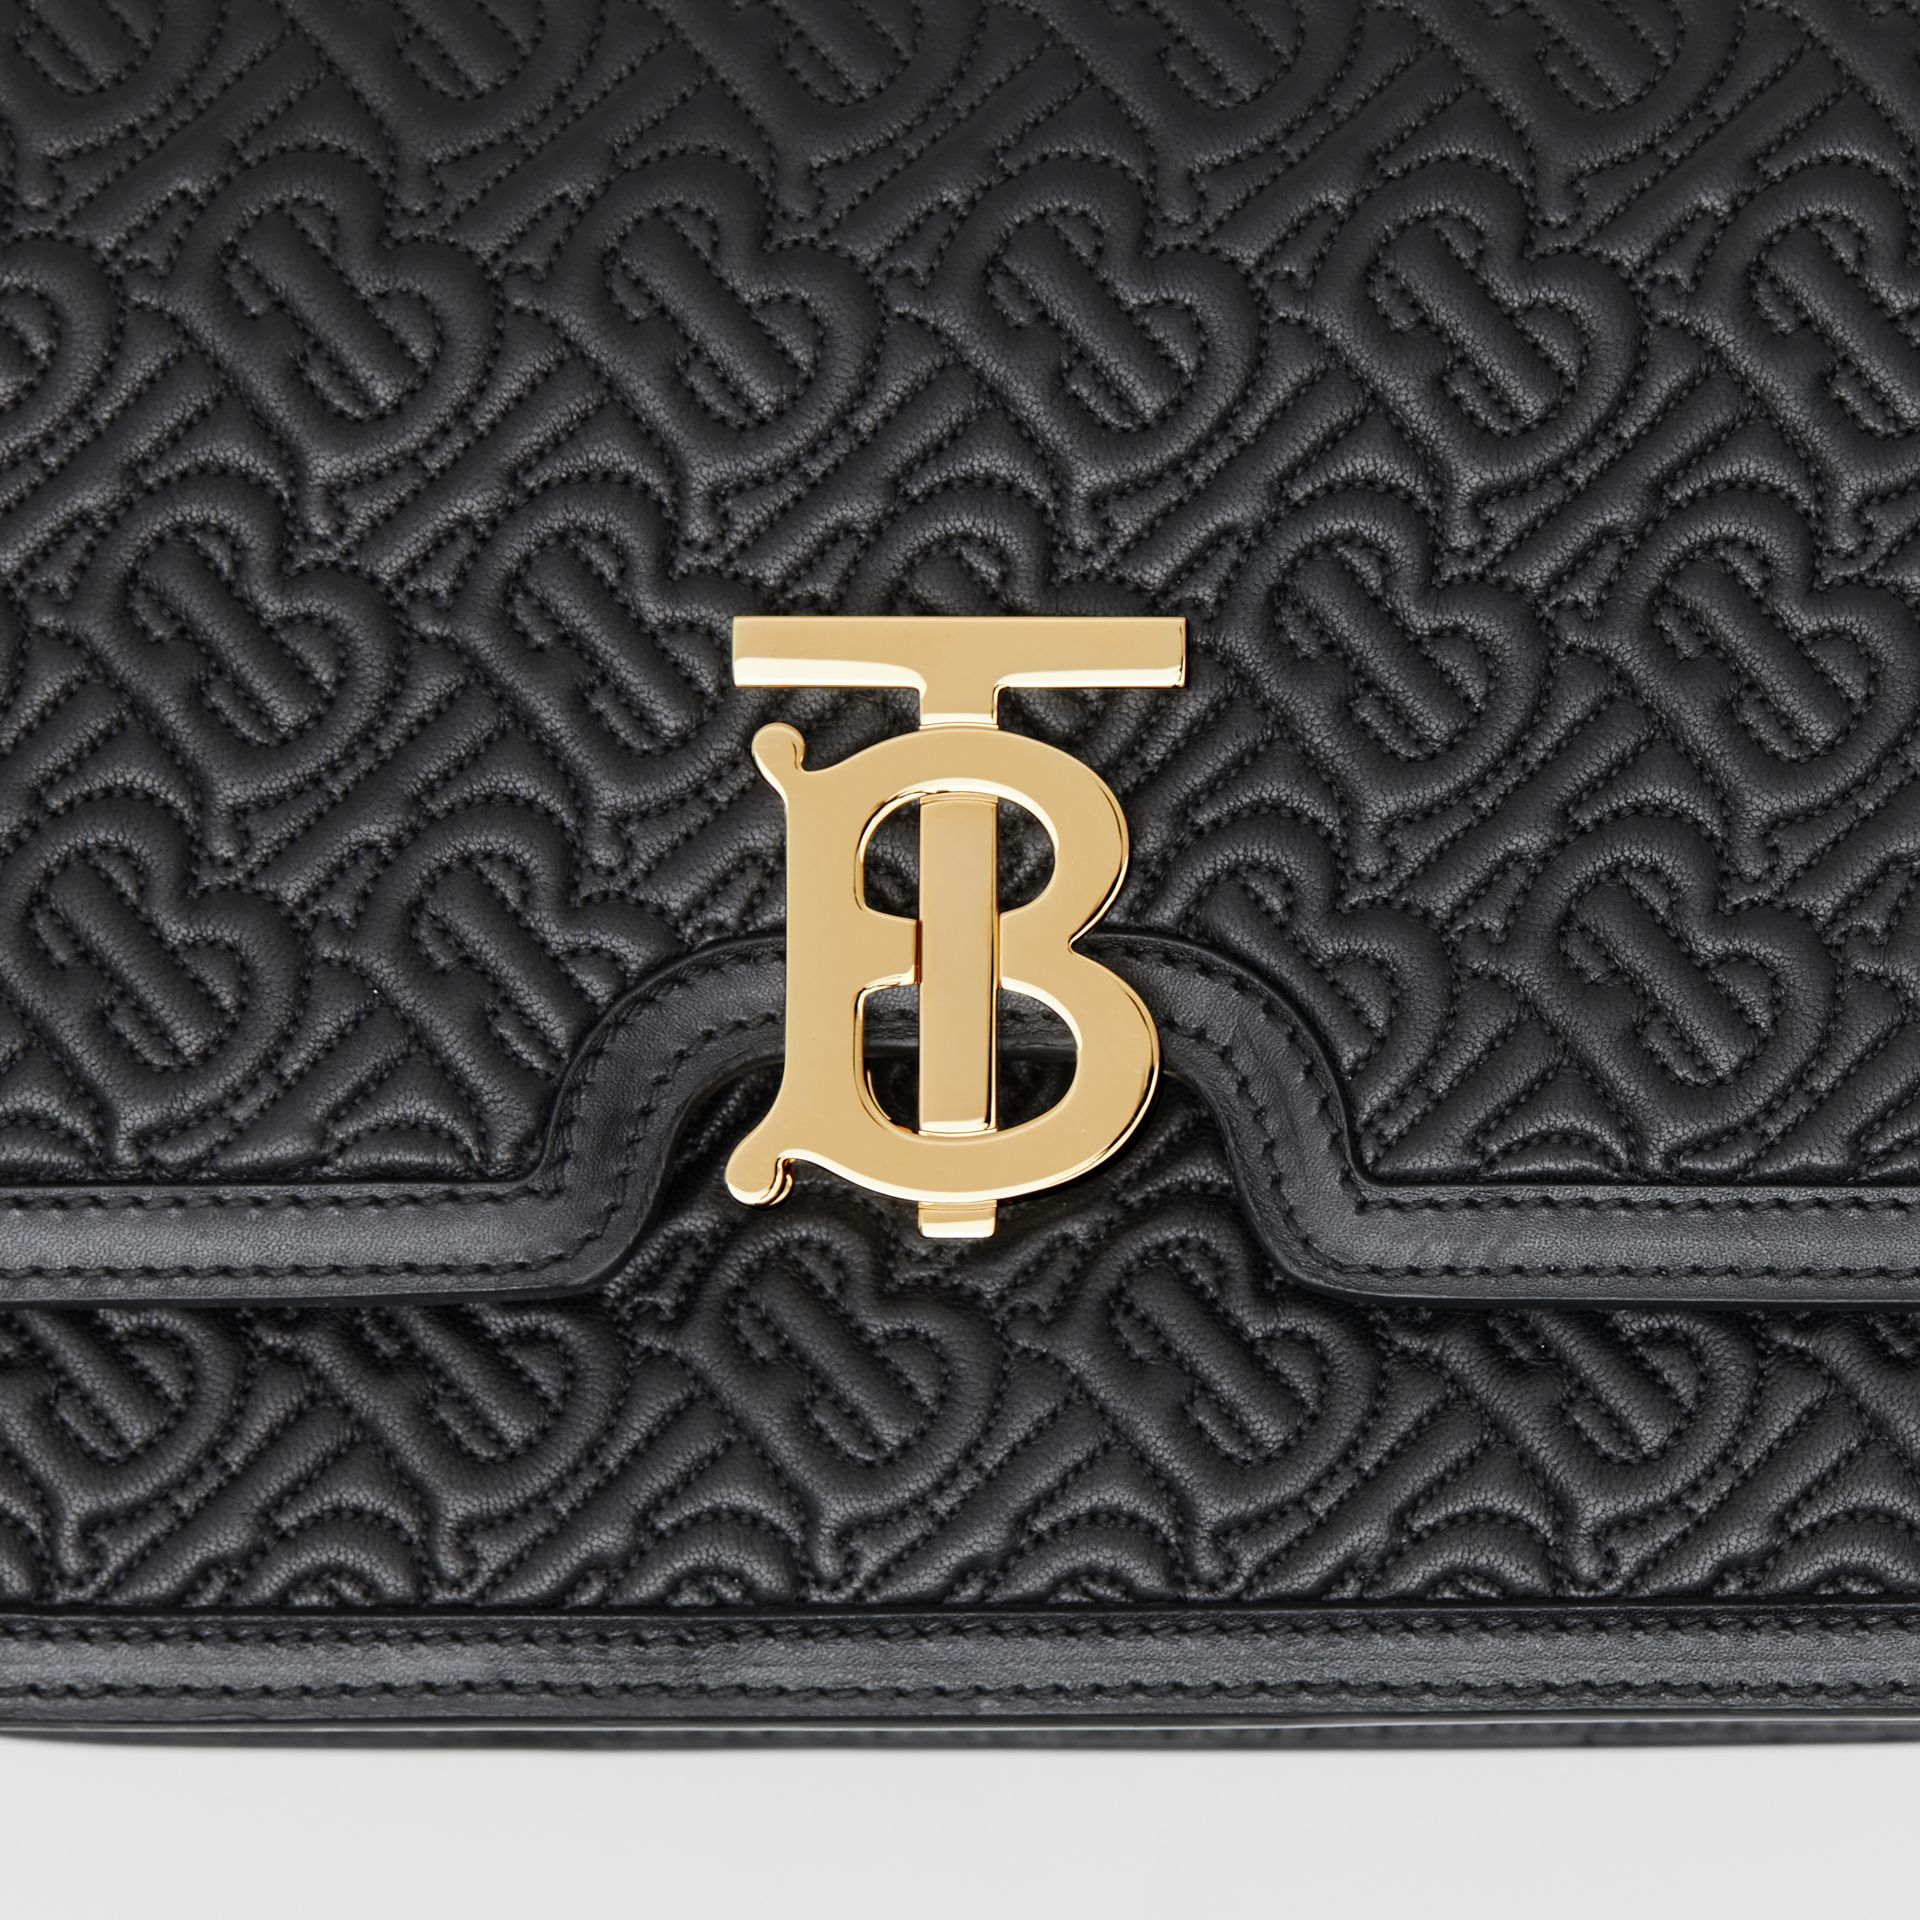 Medium Quilted Monogram Lambskin TB Bag in Black - Women | Burberry - gallery image 8